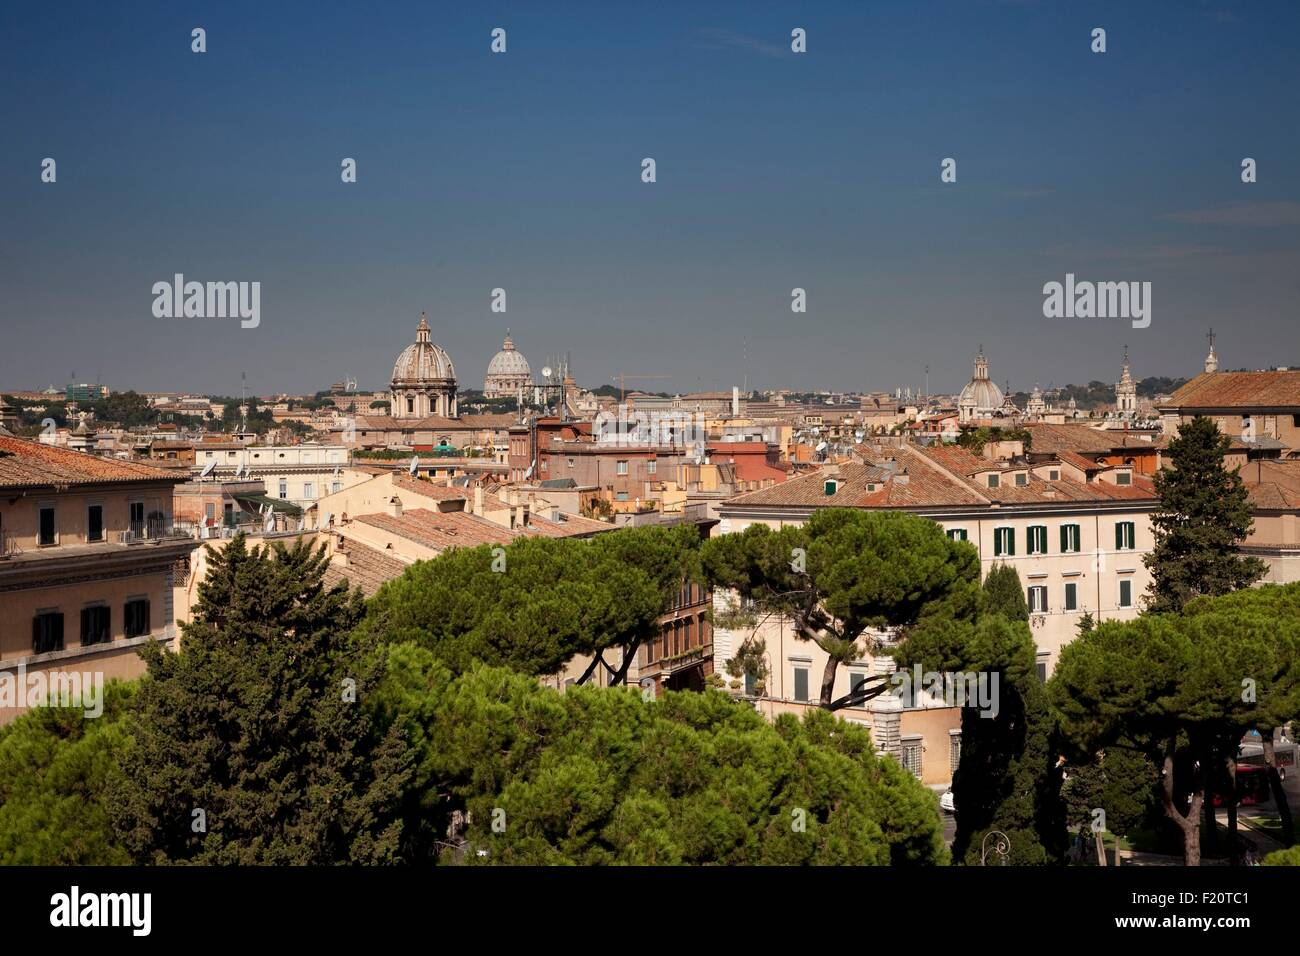 Italy, Latium, Rome, Aracoeli, view from the top of the stairs - Stock Image